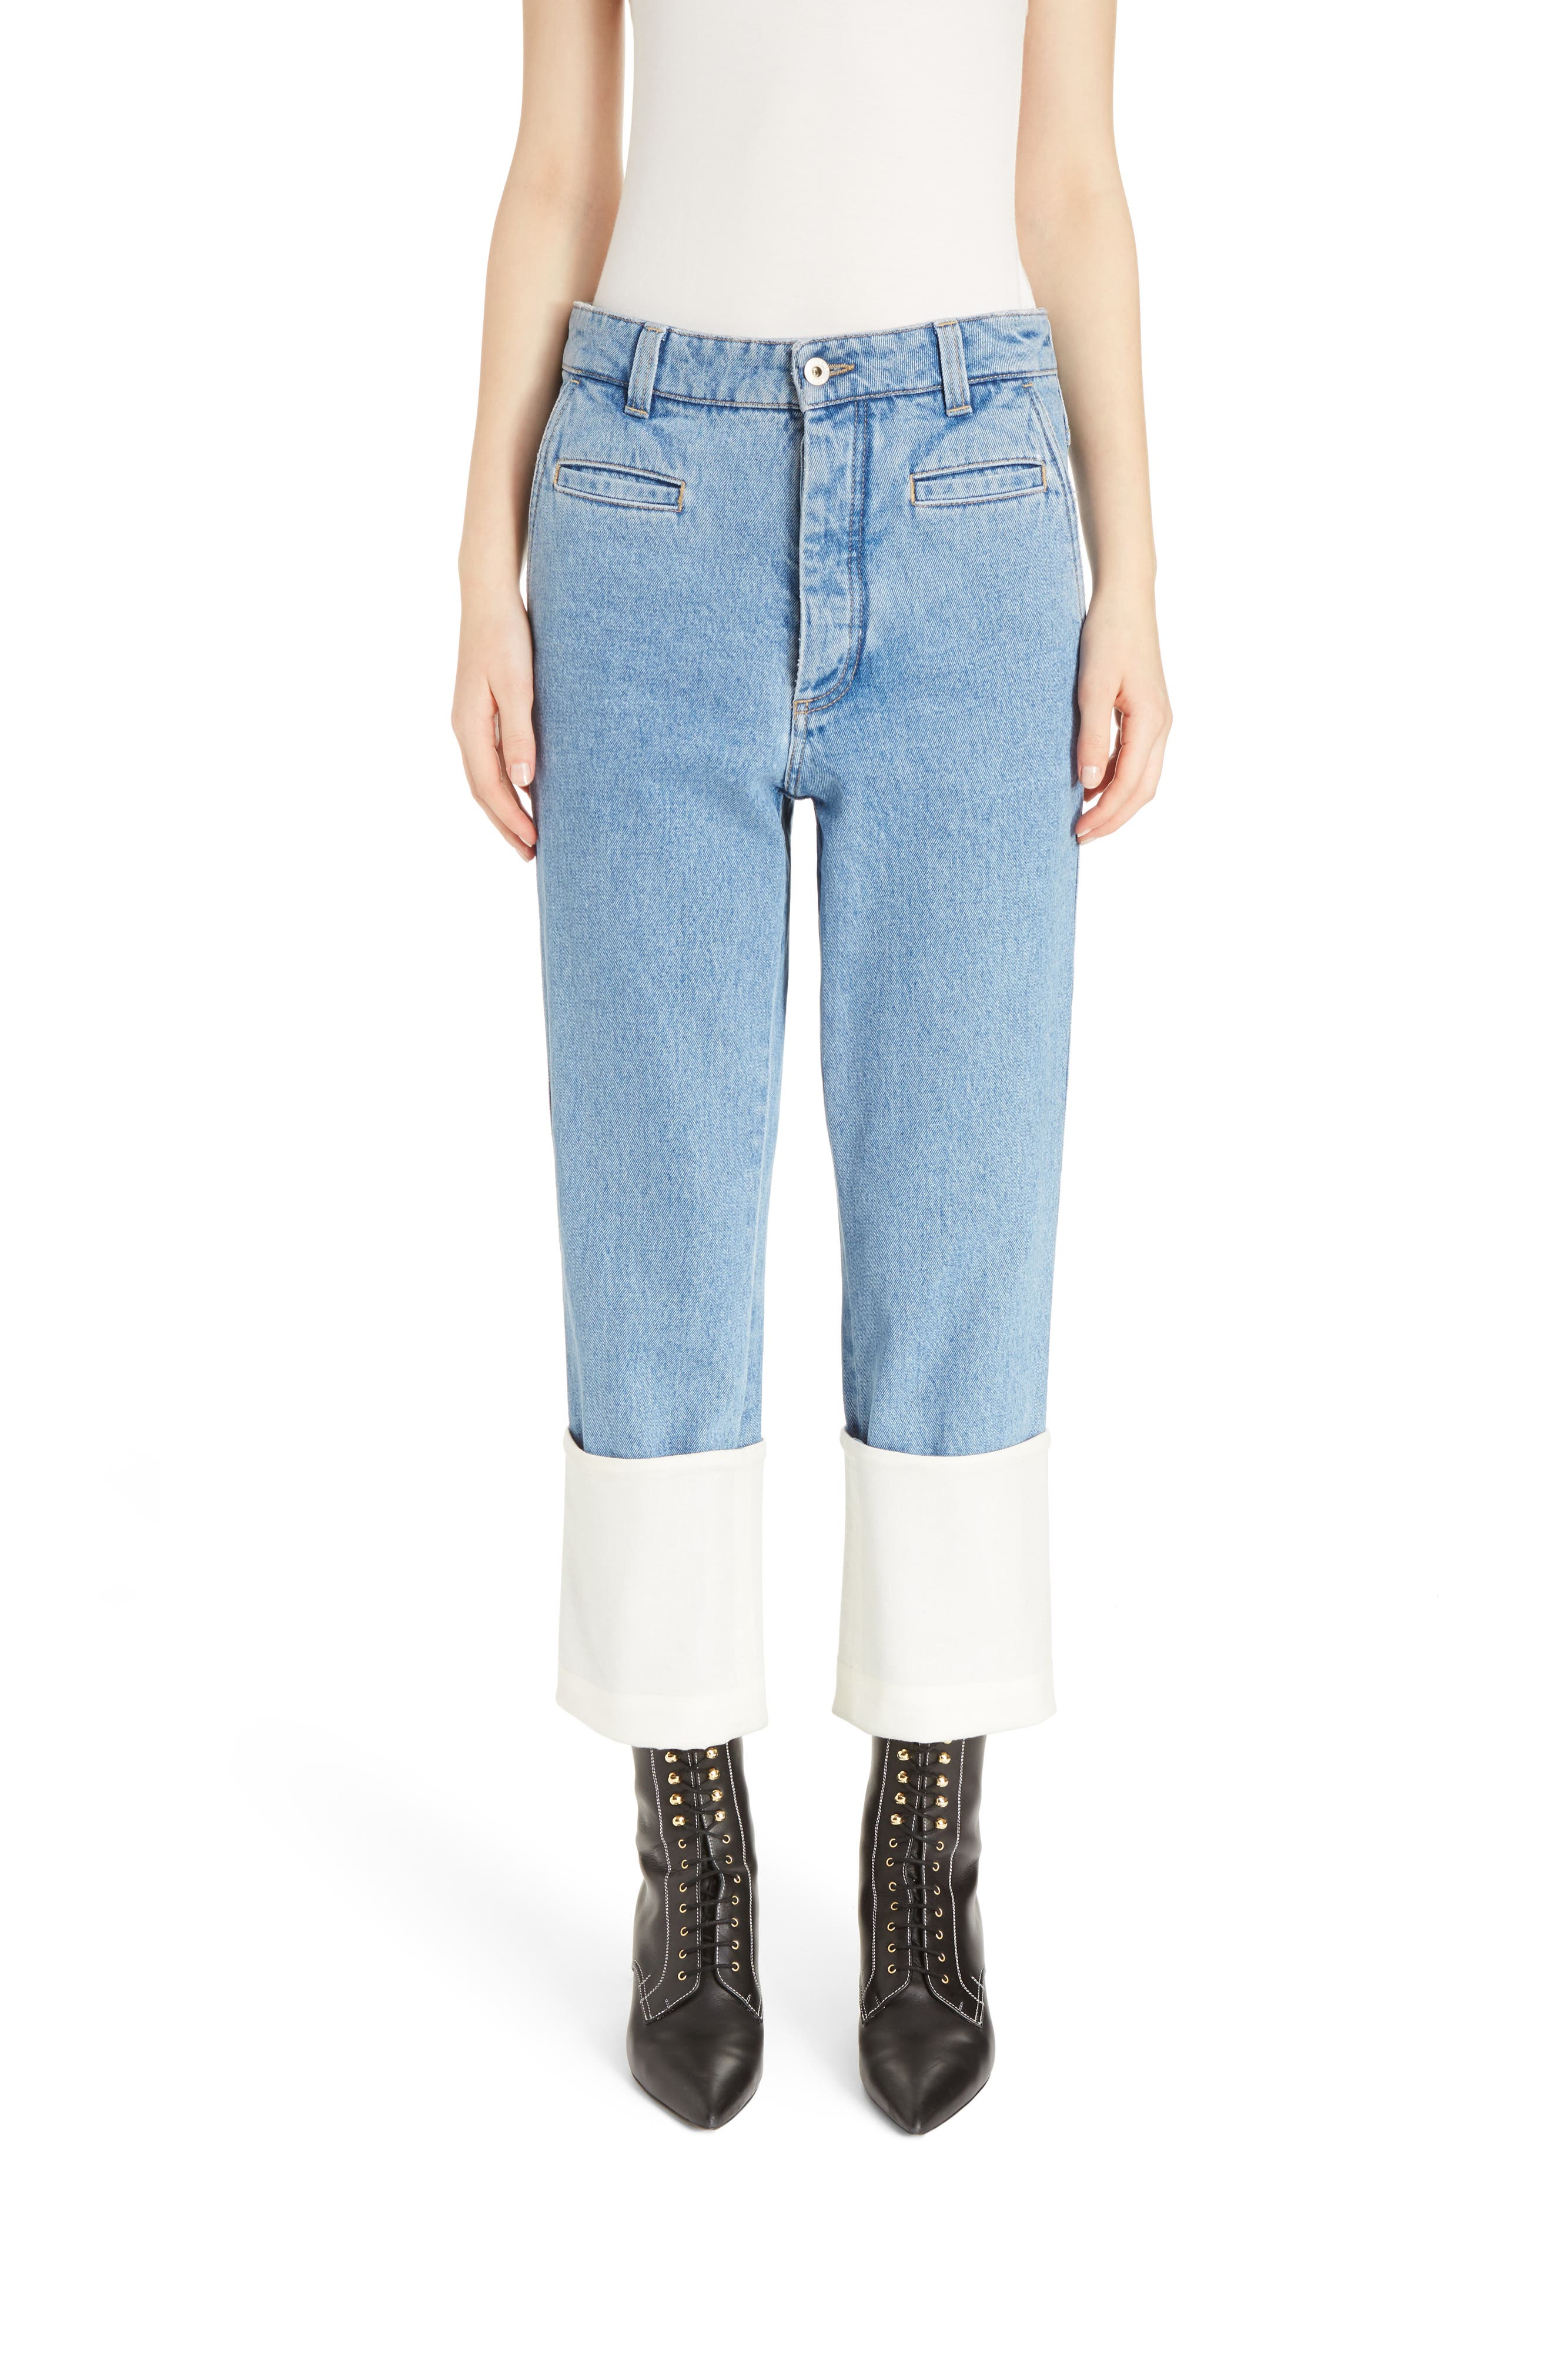 Fisherman Cuffed Jeans,                         Main,                         color, Blue